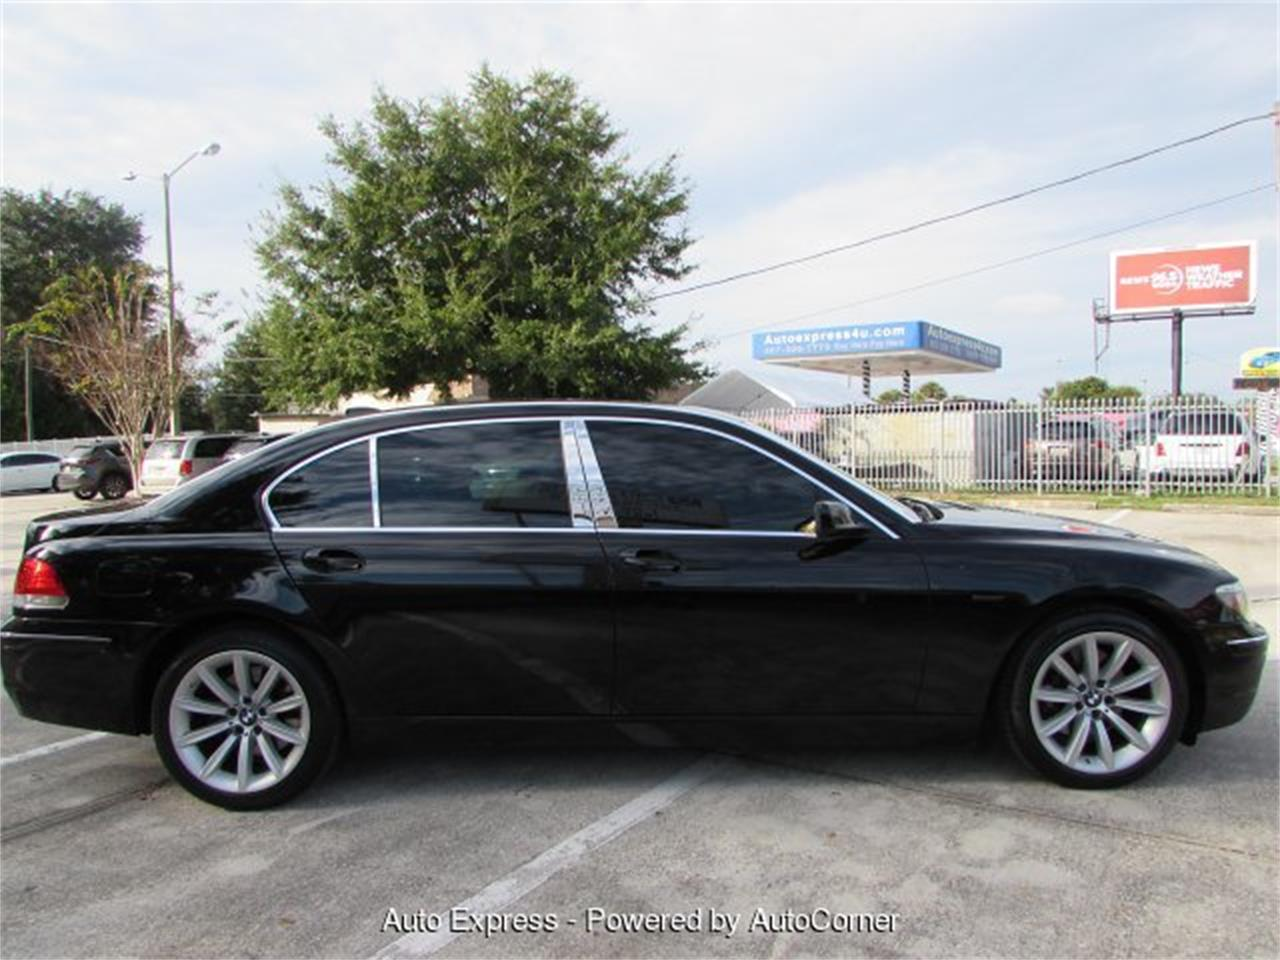 2007 BMW 7 Series for sale in Orlando, FL – photo 9